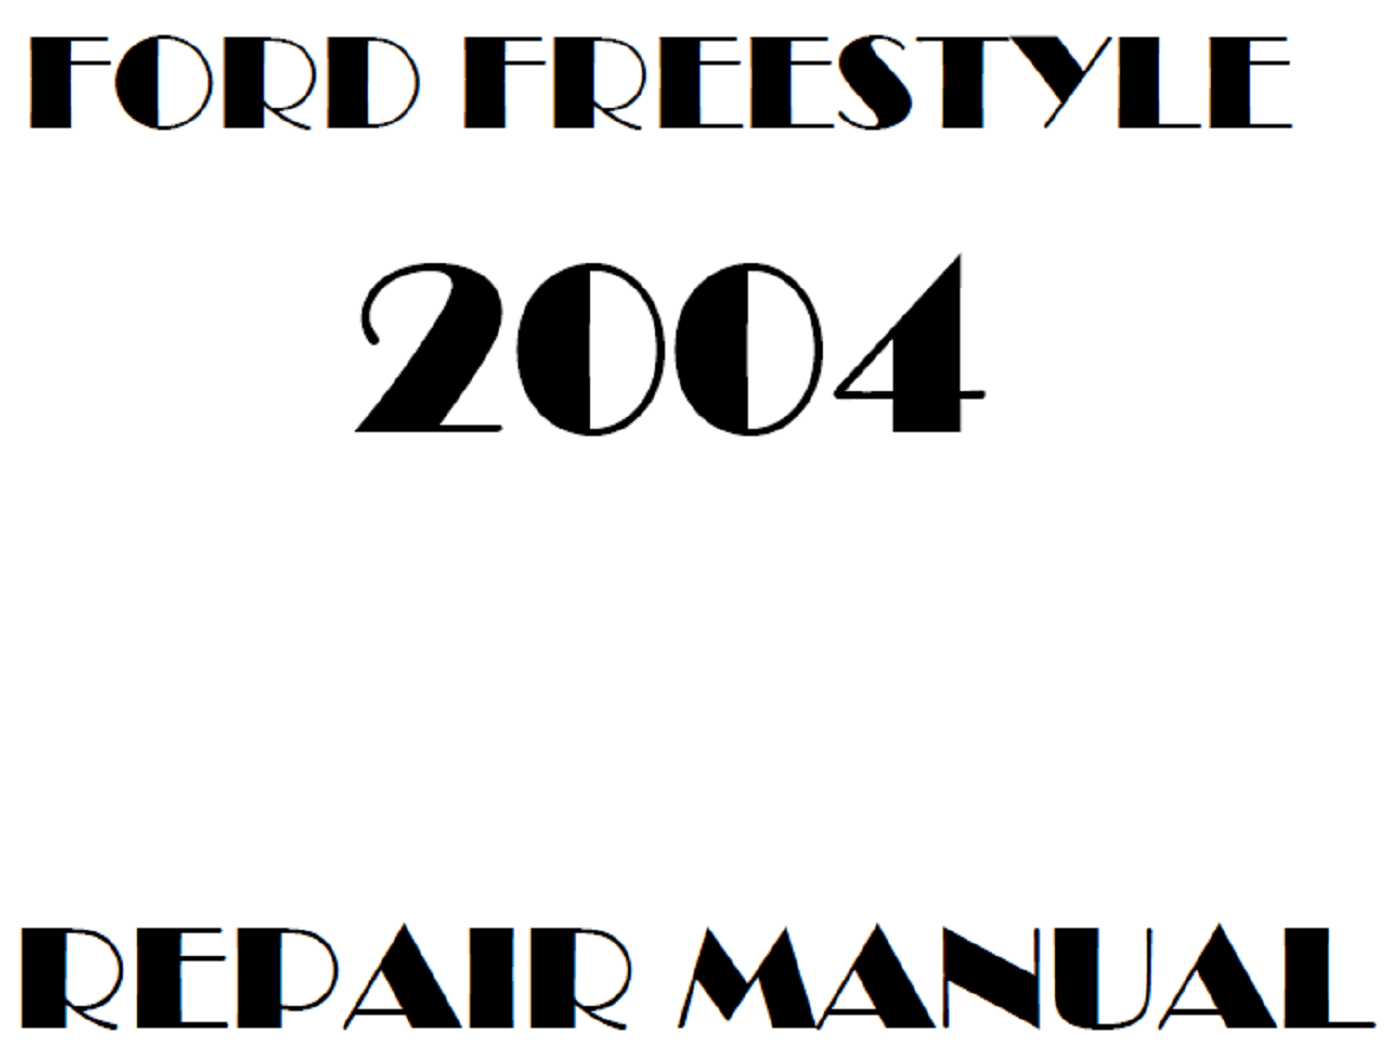 2004 Ford Freestyle repair manual